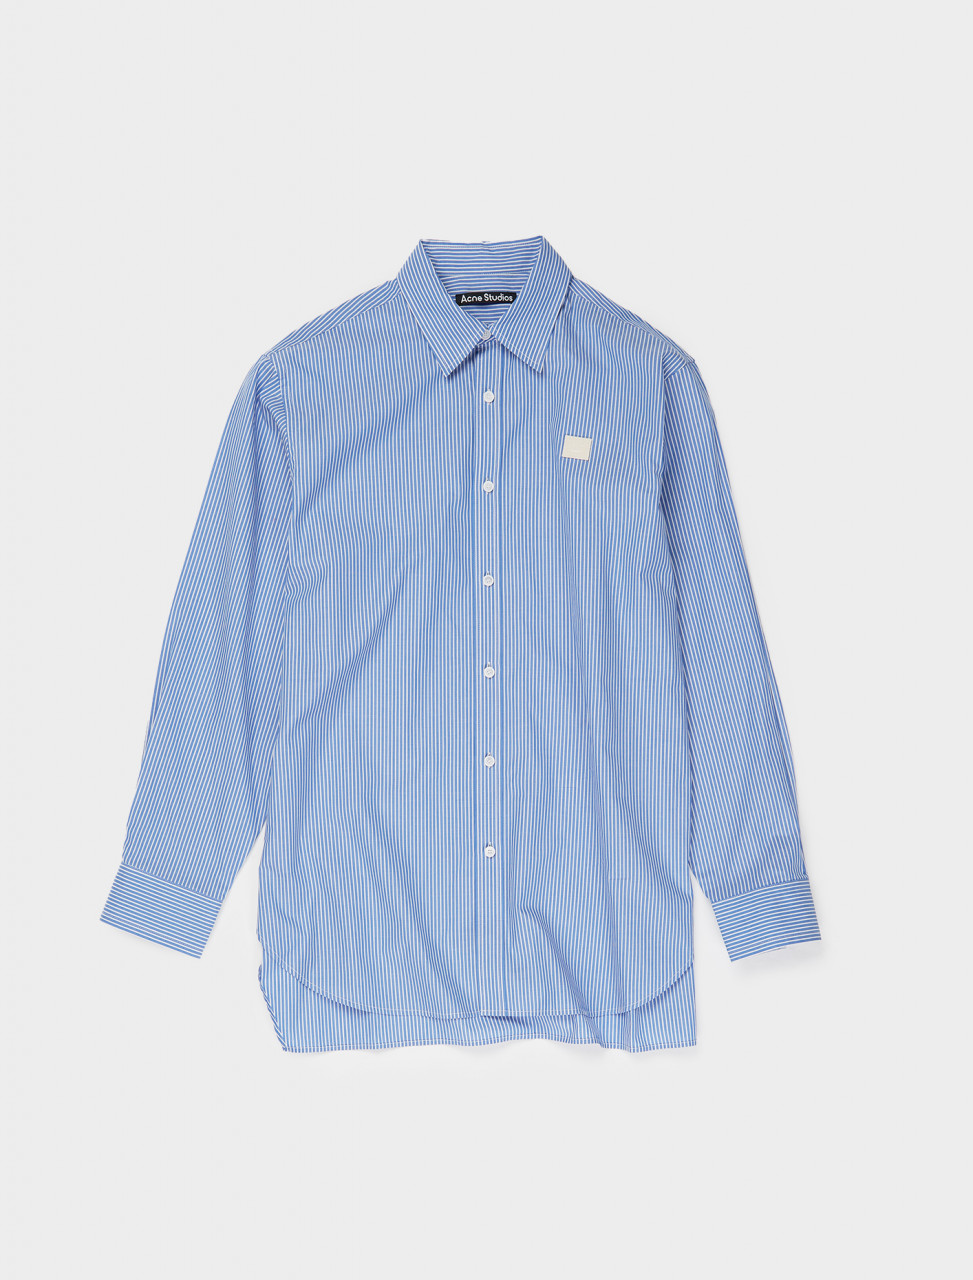 110-CB0021-AF2 ACNE STUDIOS FACE PATCH STRIPED SHIRT BLUE N WHITE